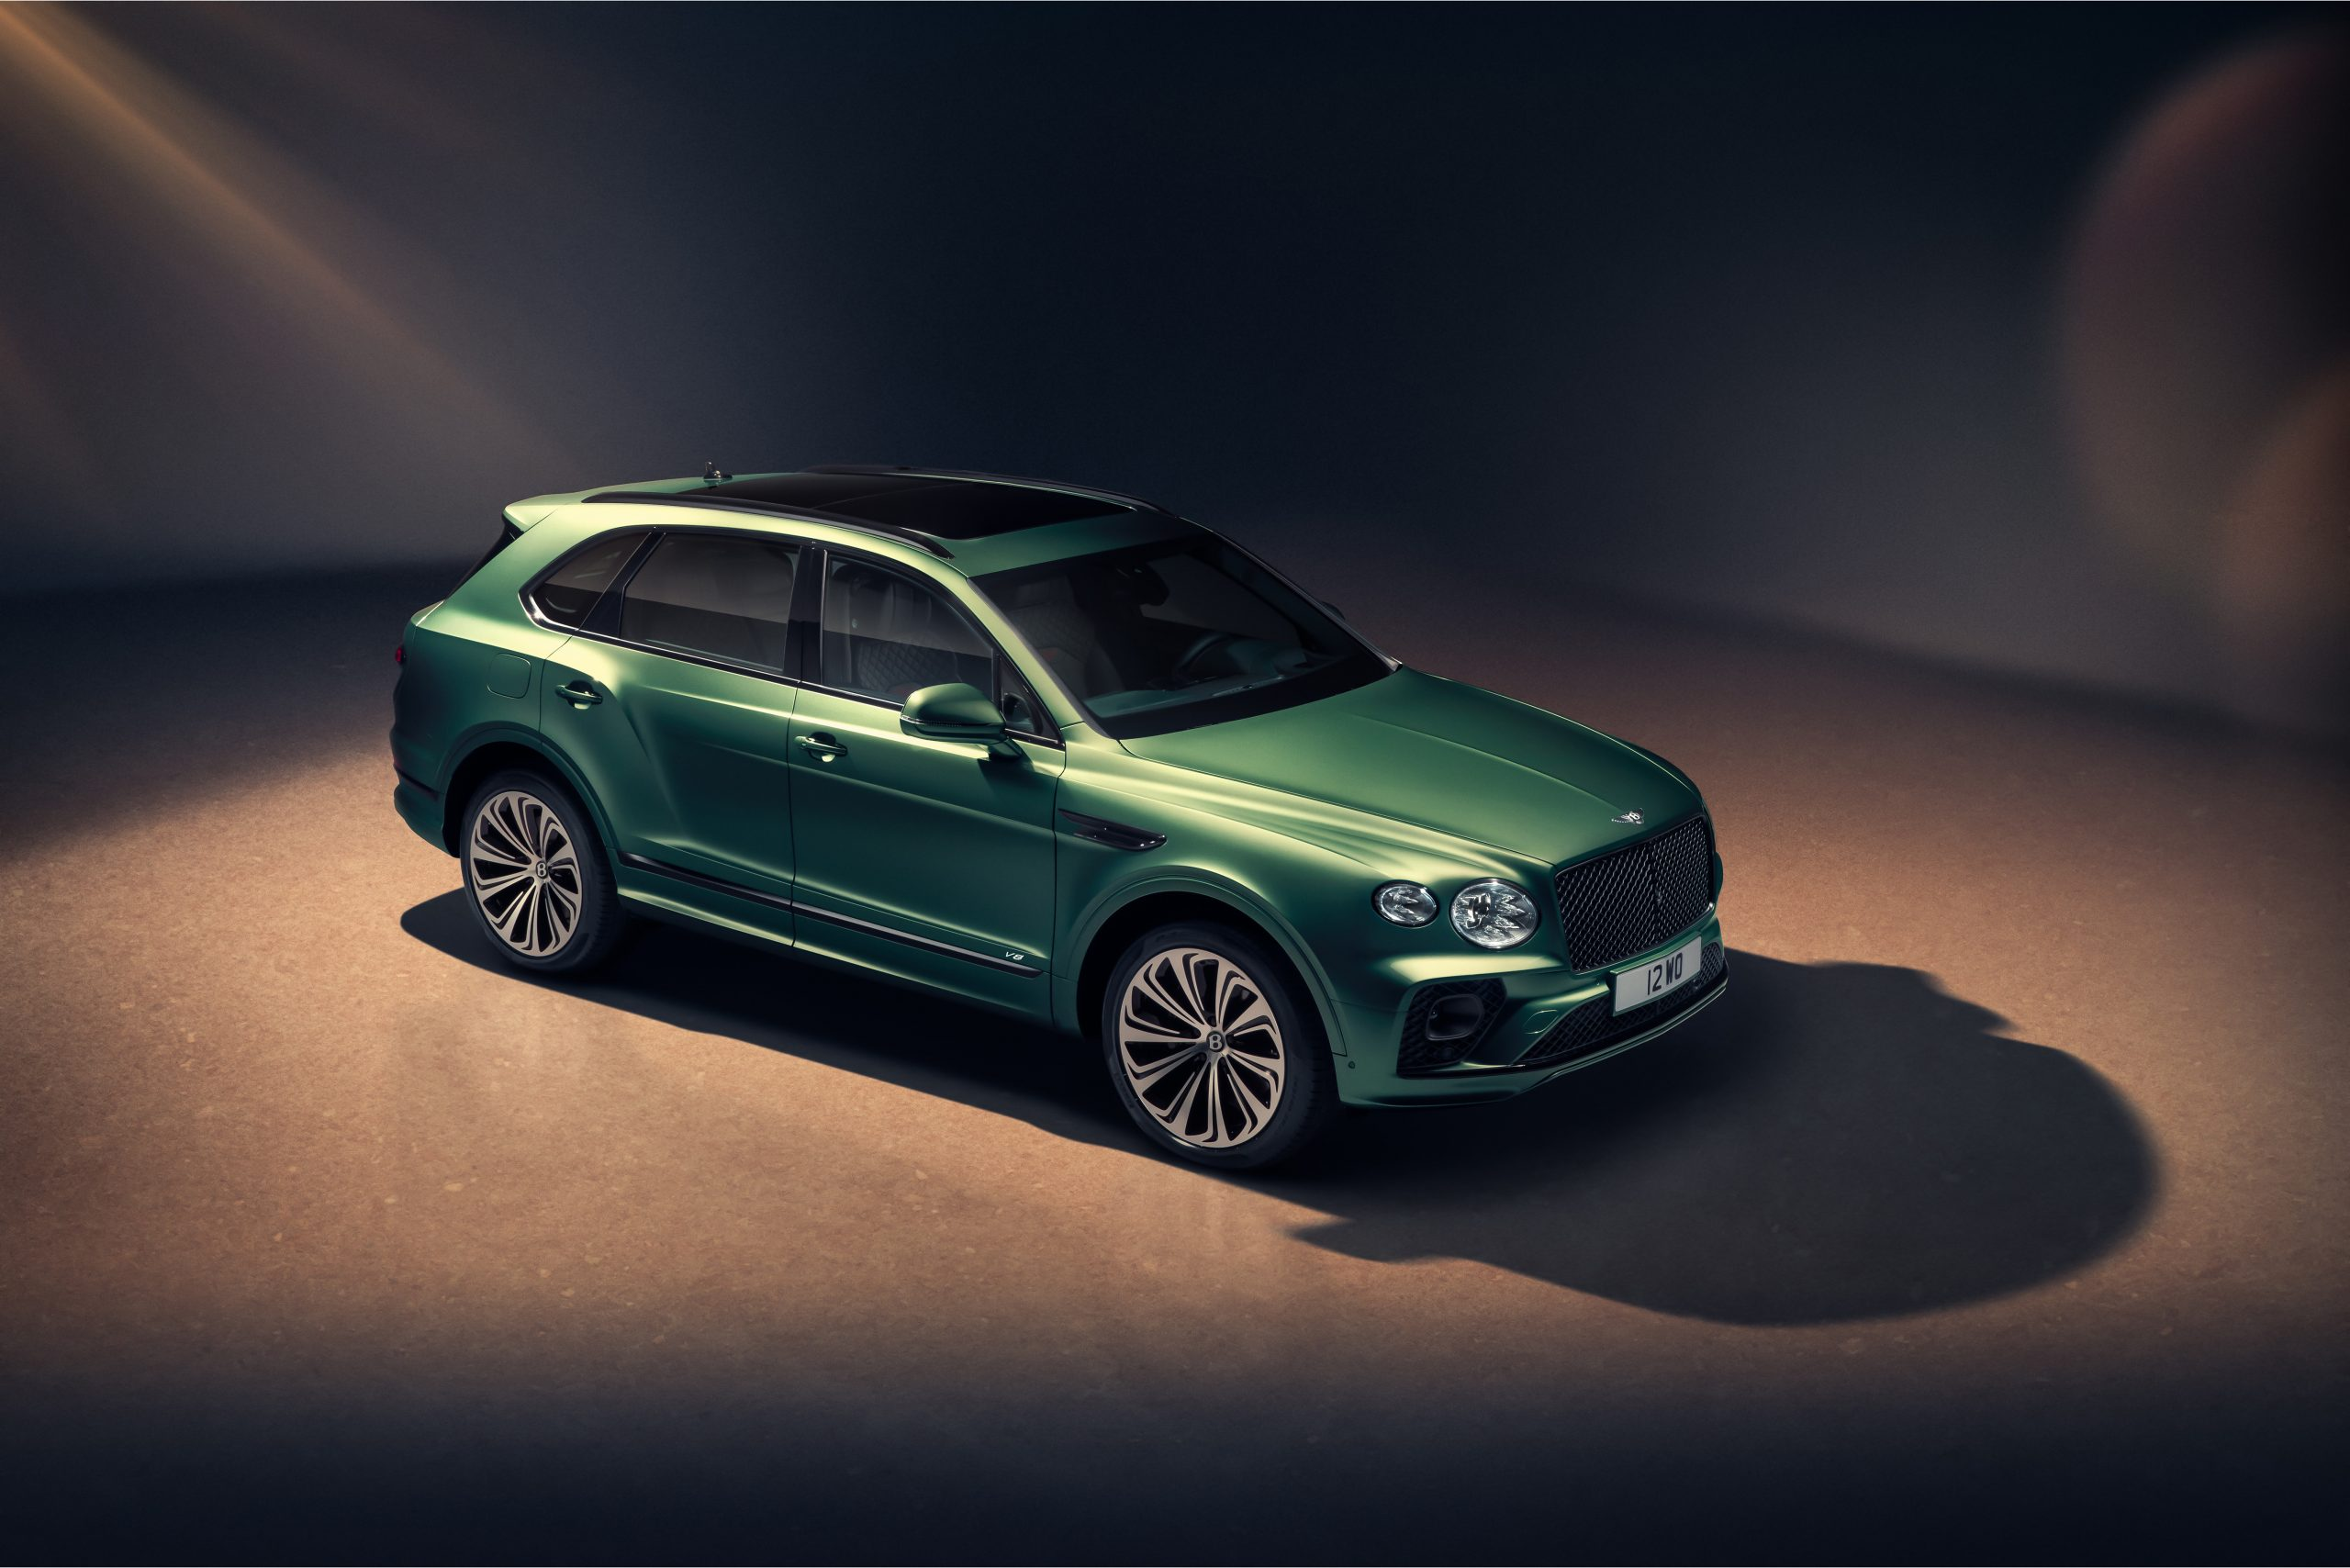 Bentley New Bentayga - Alpine Green - 5